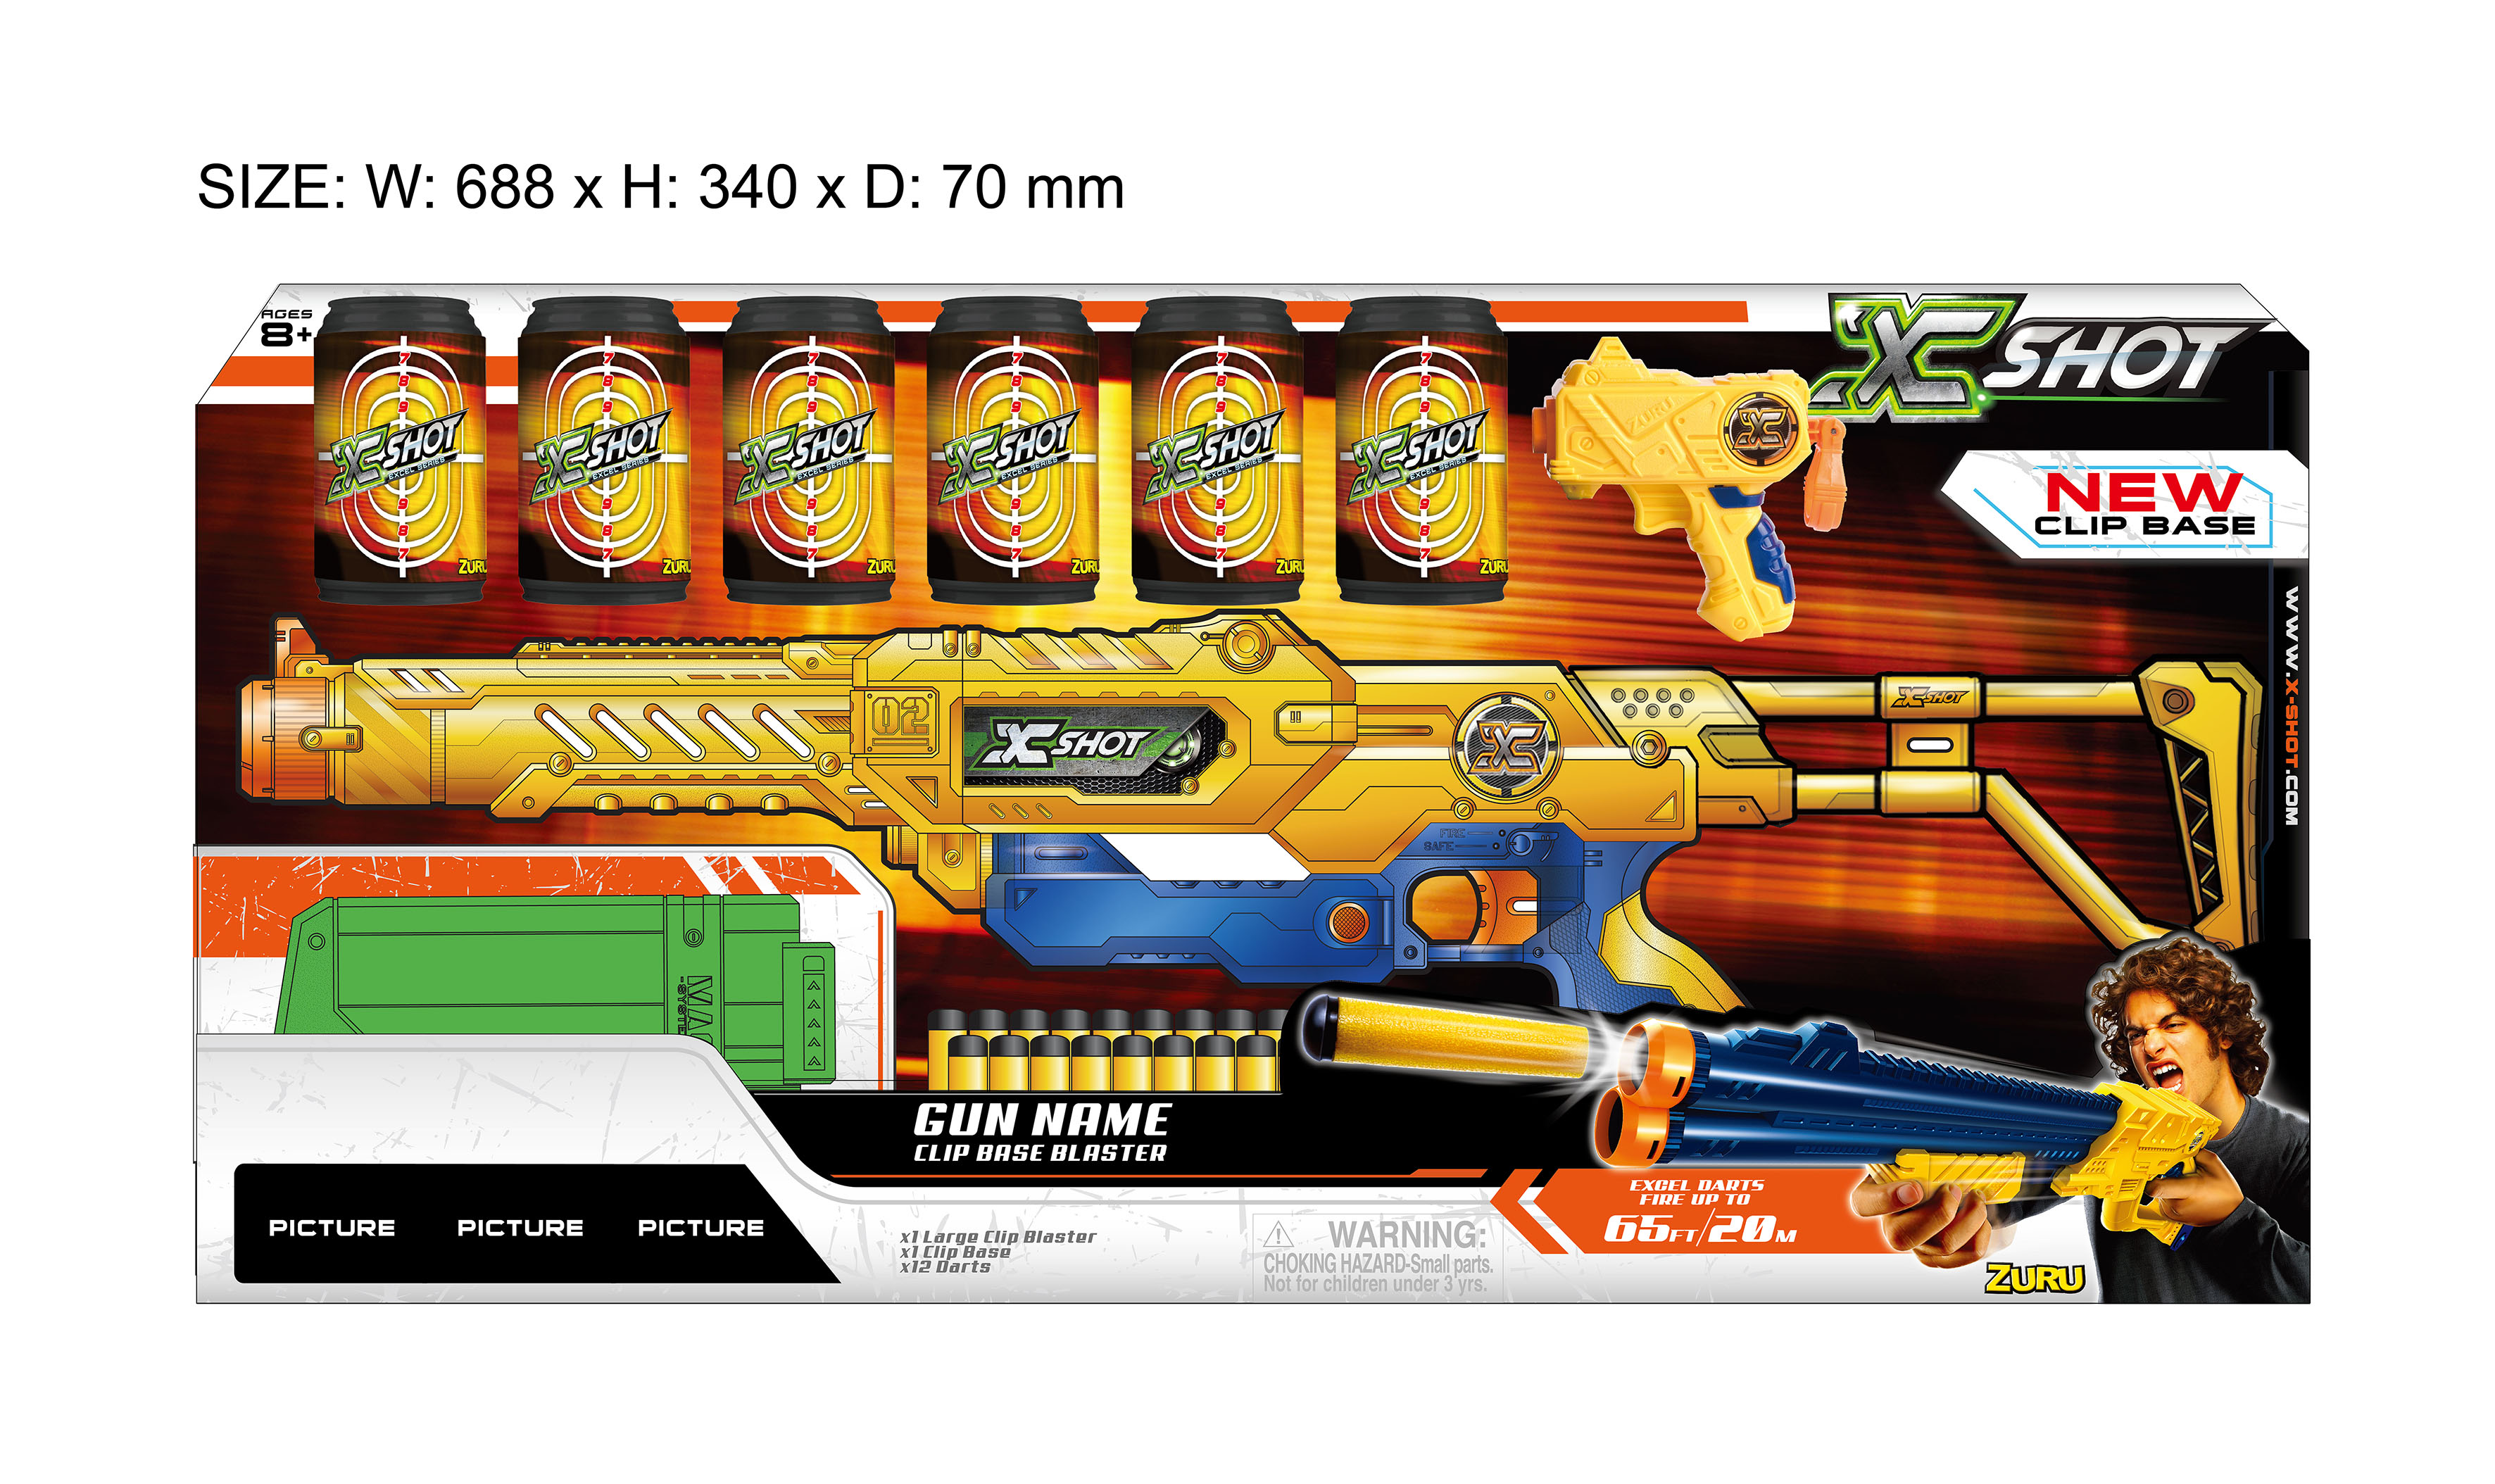 XSHOT Excel Clip Series Max Attack Rifle like Nerf